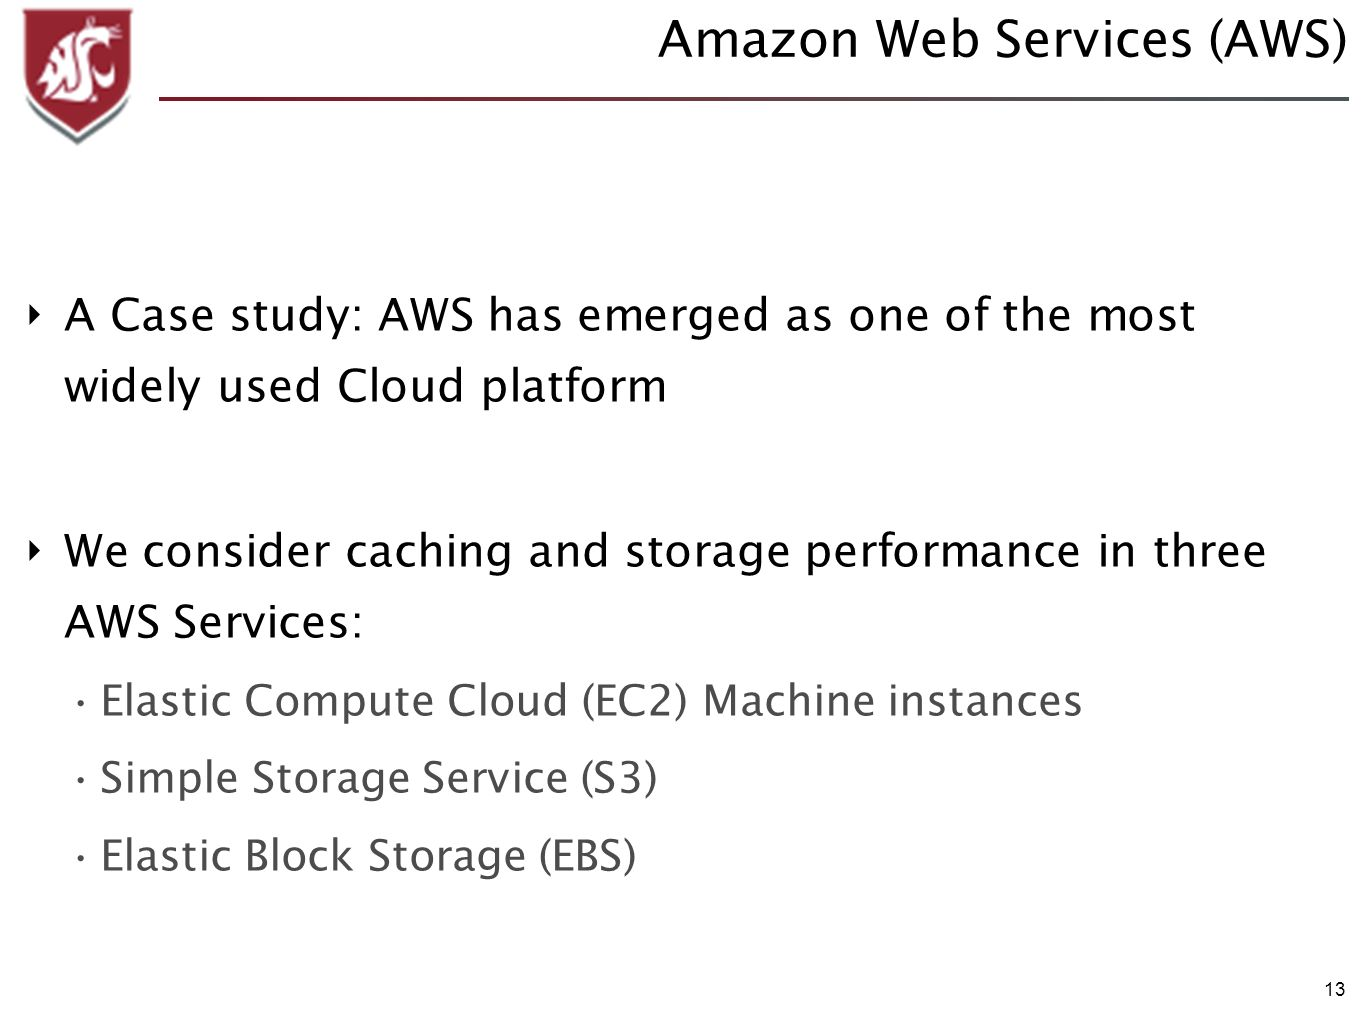 13 Amazon Web Services (AWS) A Case study: AWS has emerged as one of the most widely used Cloud platform We consider caching and storage performance in three AWS Services: Elastic Compute Cloud (EC2) Machine instances Simple Storage Service (S3) Elastic Block Storage (EBS)